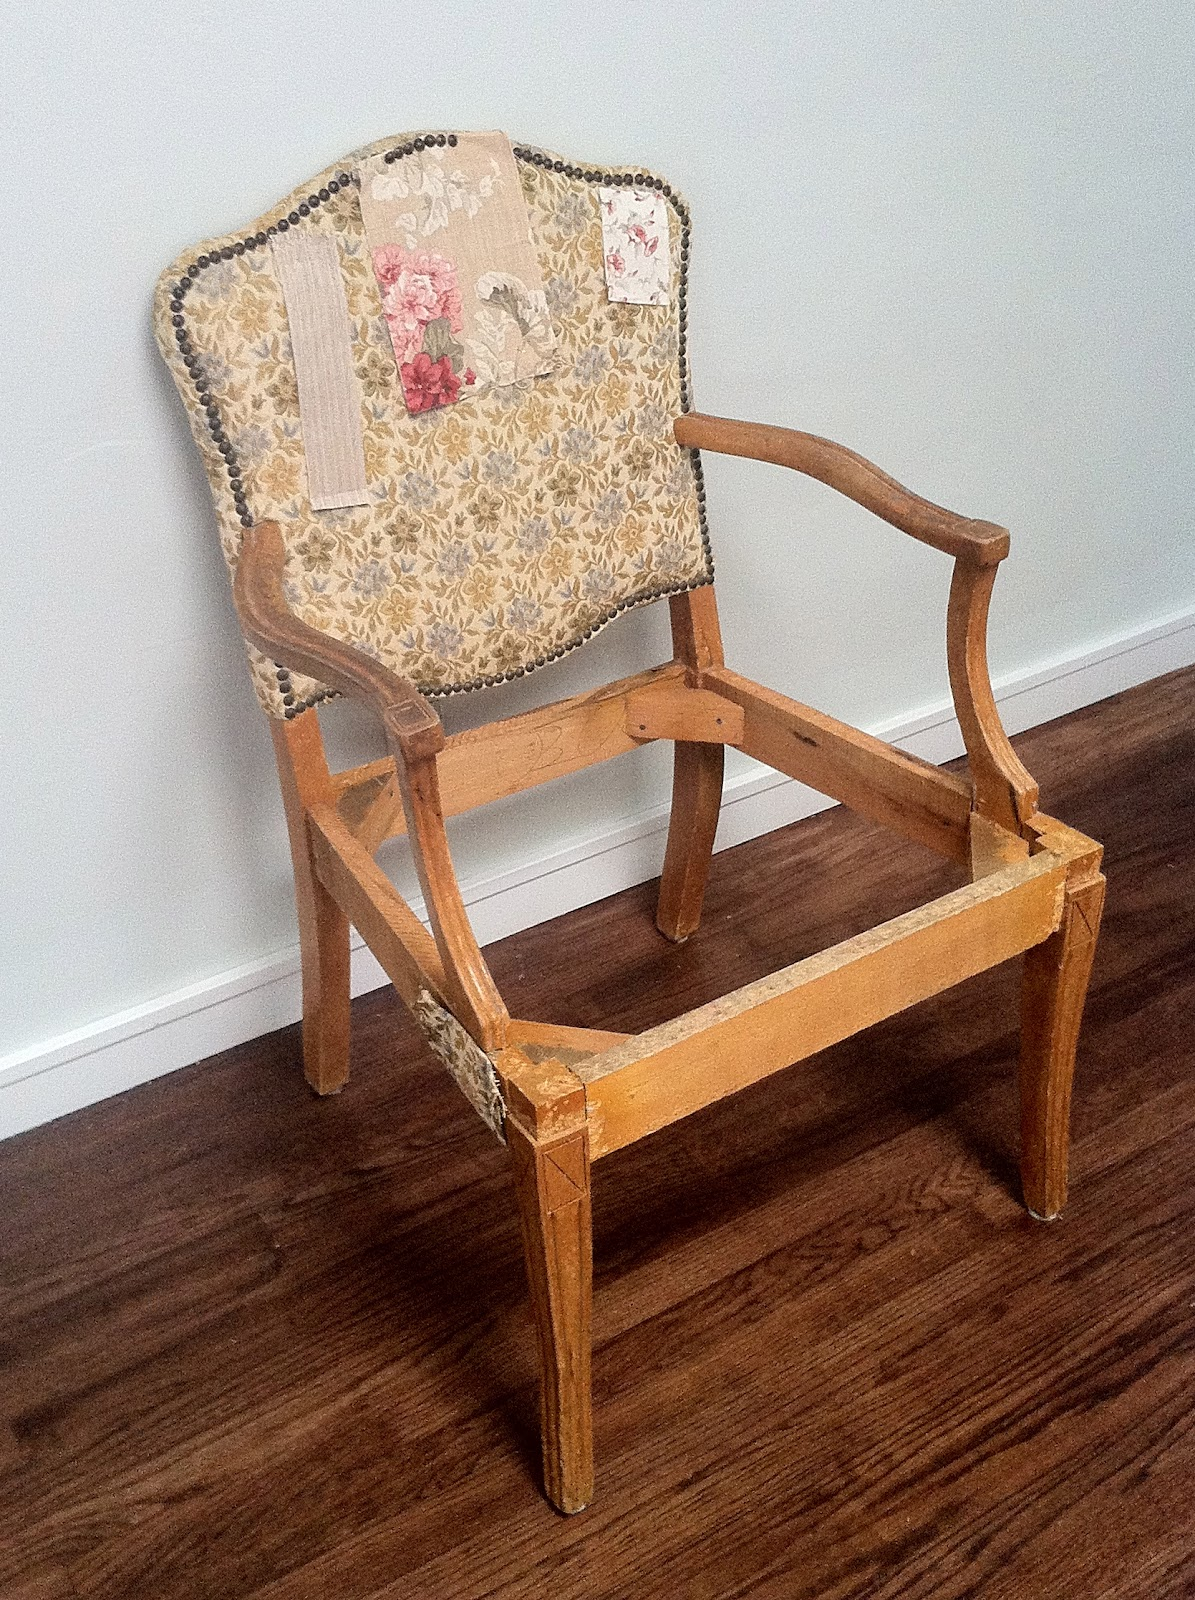 how much fabric do i need to recover a sofa sears covers canada upholster an antique chair step 1 my fifties